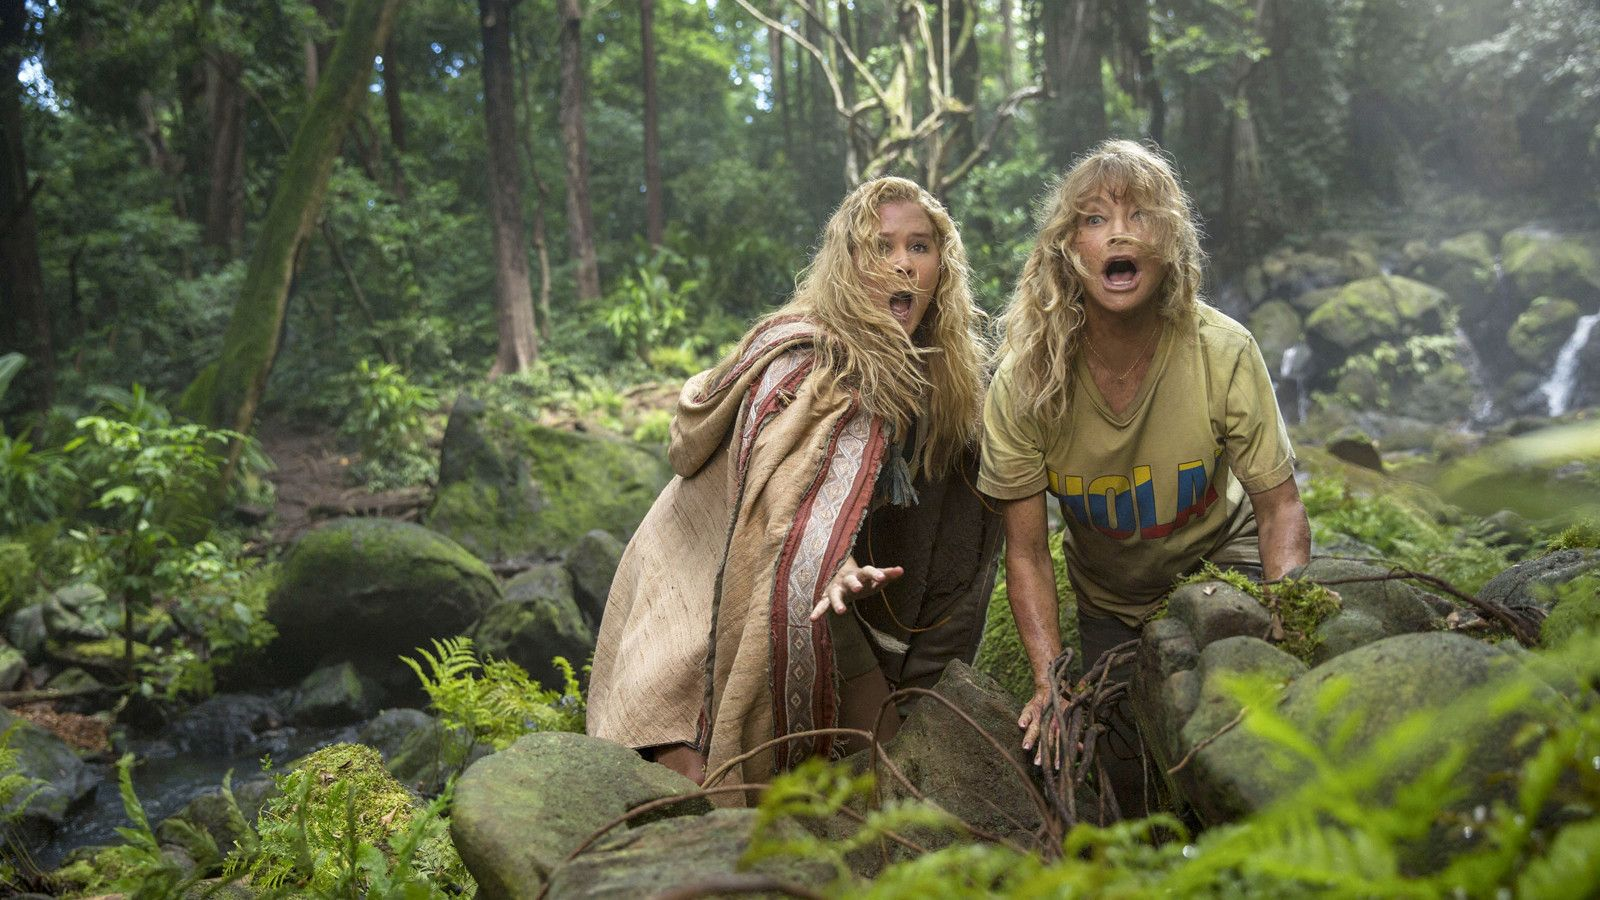 Amy Schumer and Goldie Hawn get lost in the jungle with 'Snatched' - Los Angeles Times